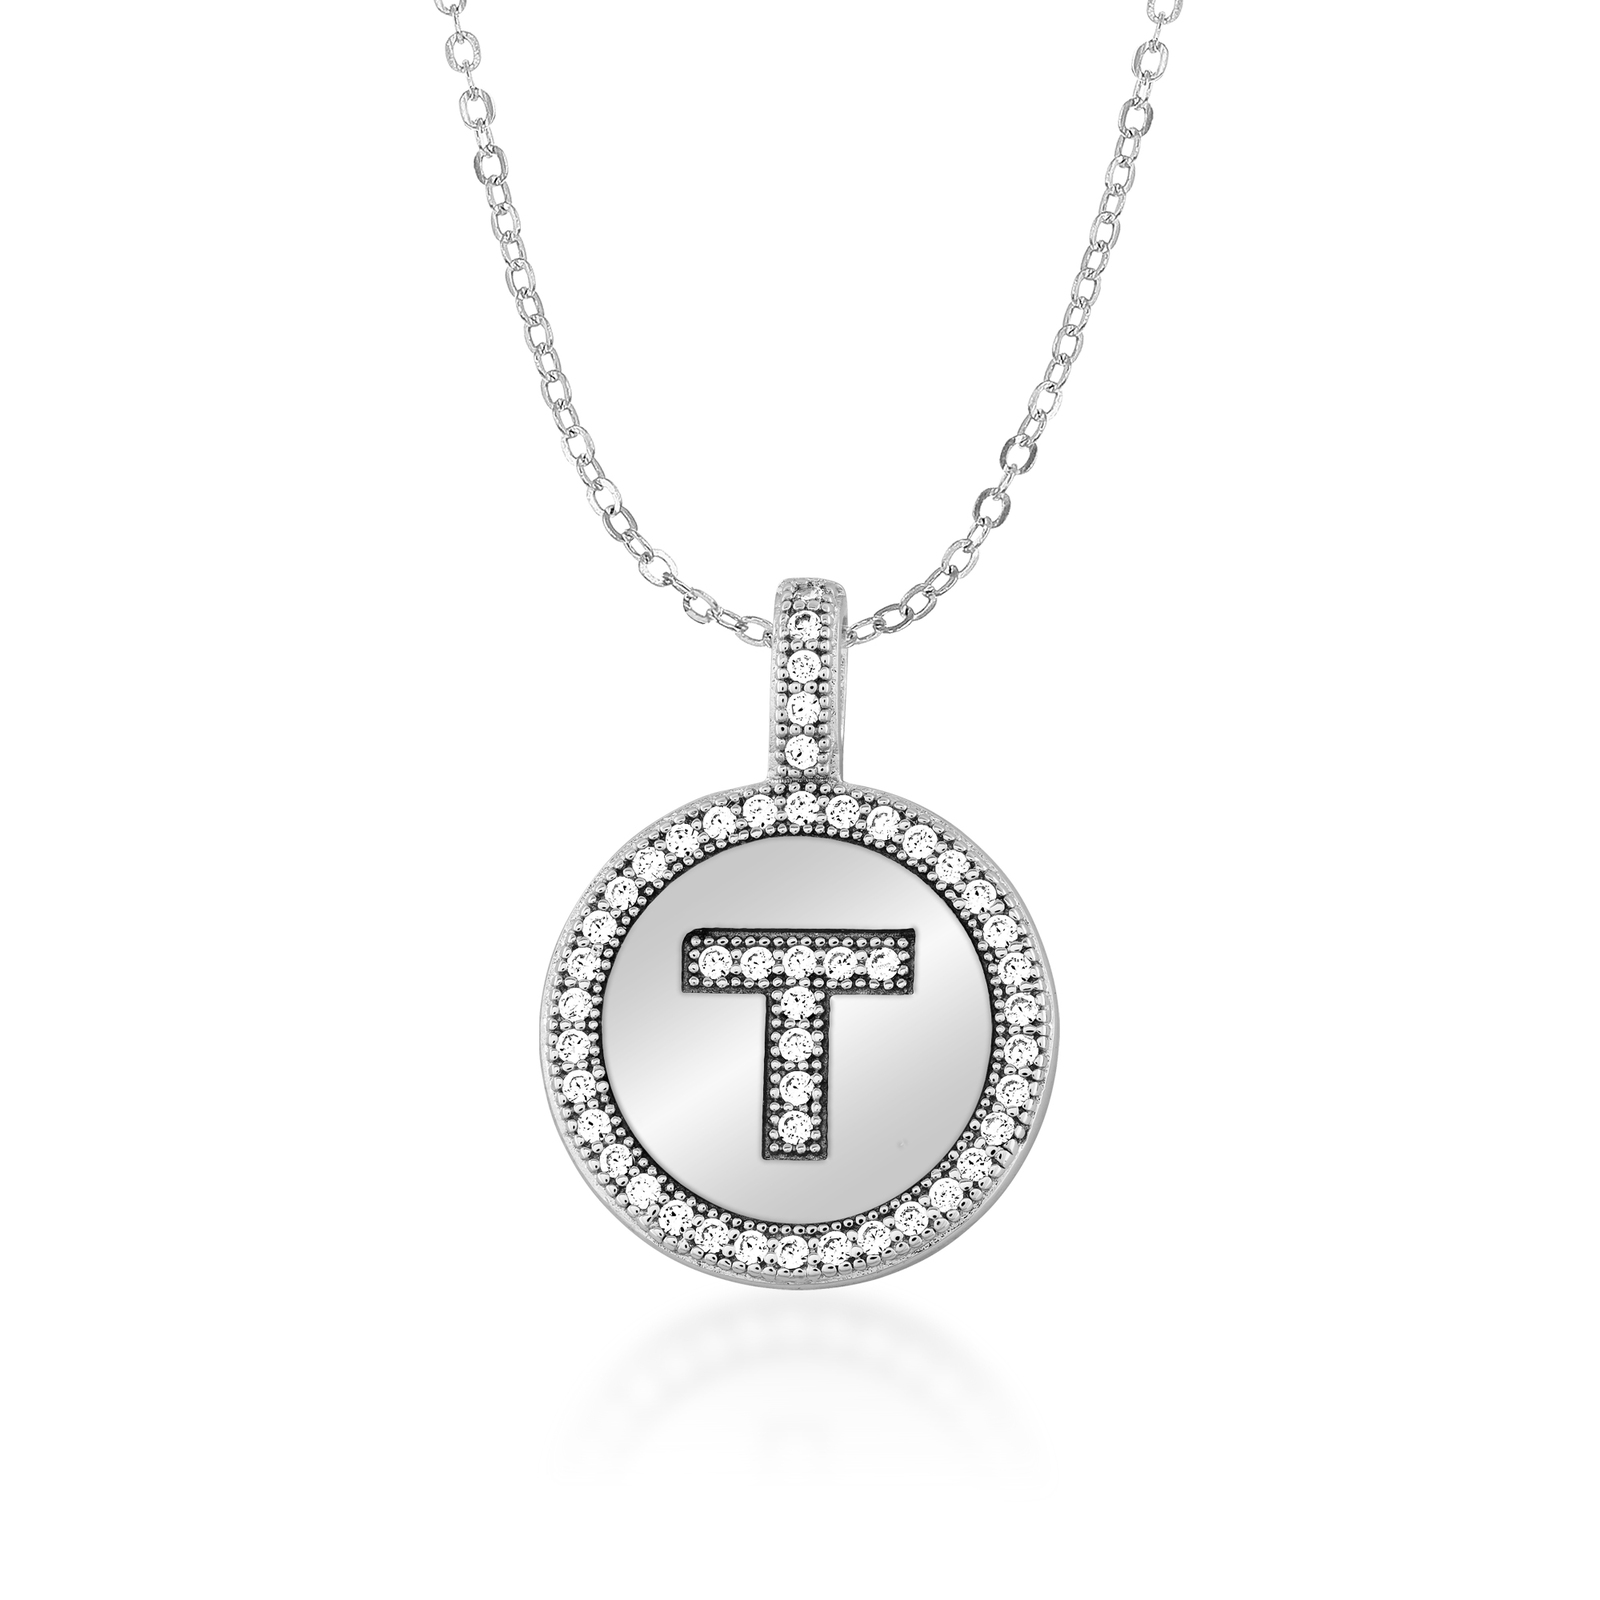 Primary image for  Women's .925 Silver Necklace